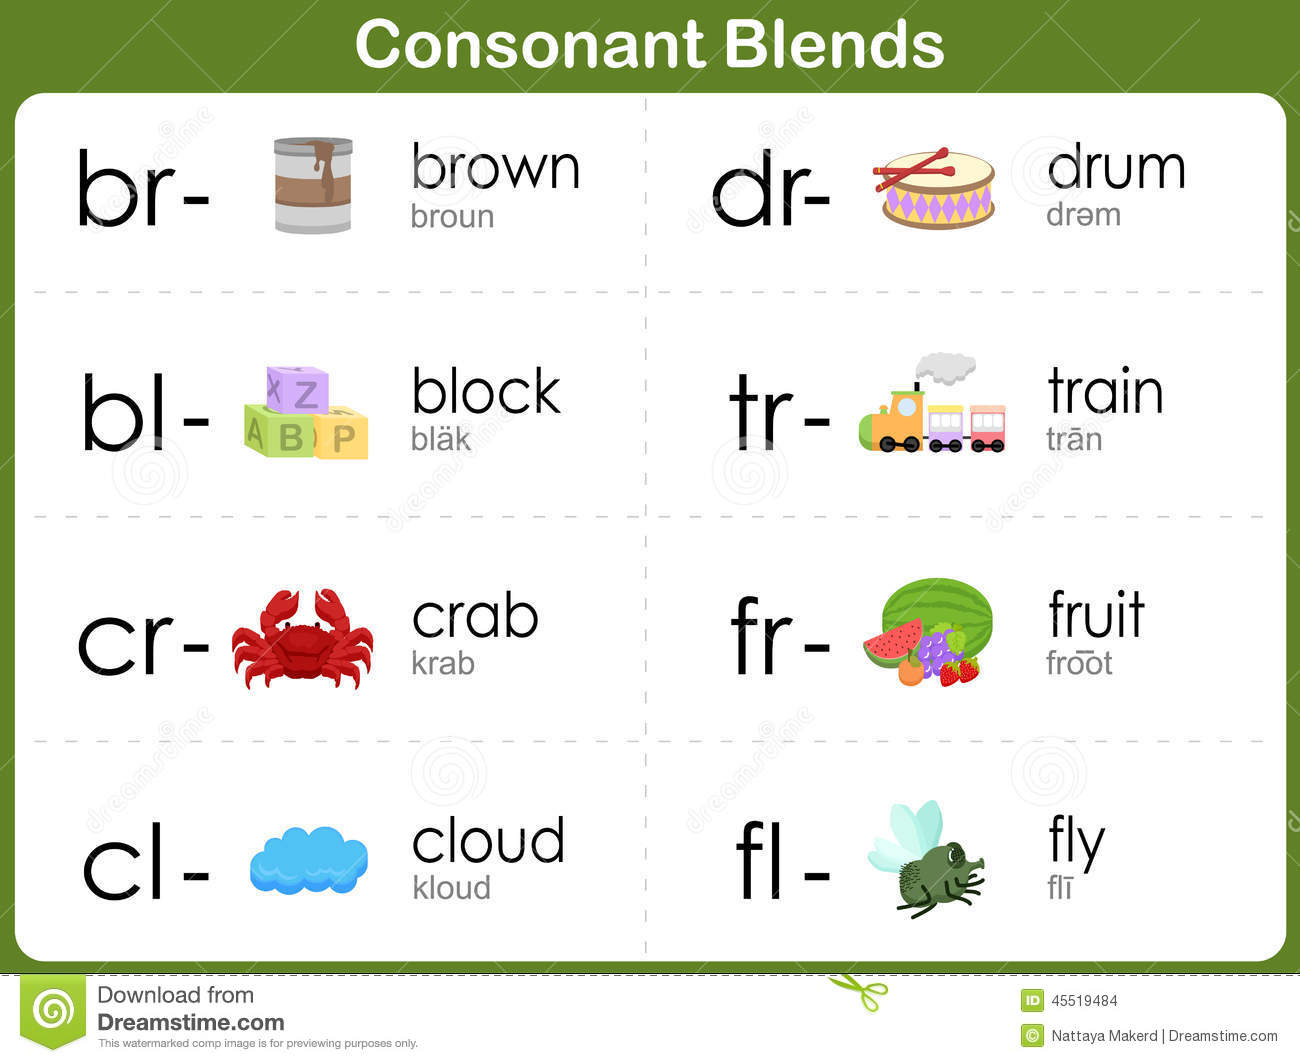 Consonant Blends Worksheet For Kids Vector Image 45519484 – Consonant Blend Worksheets